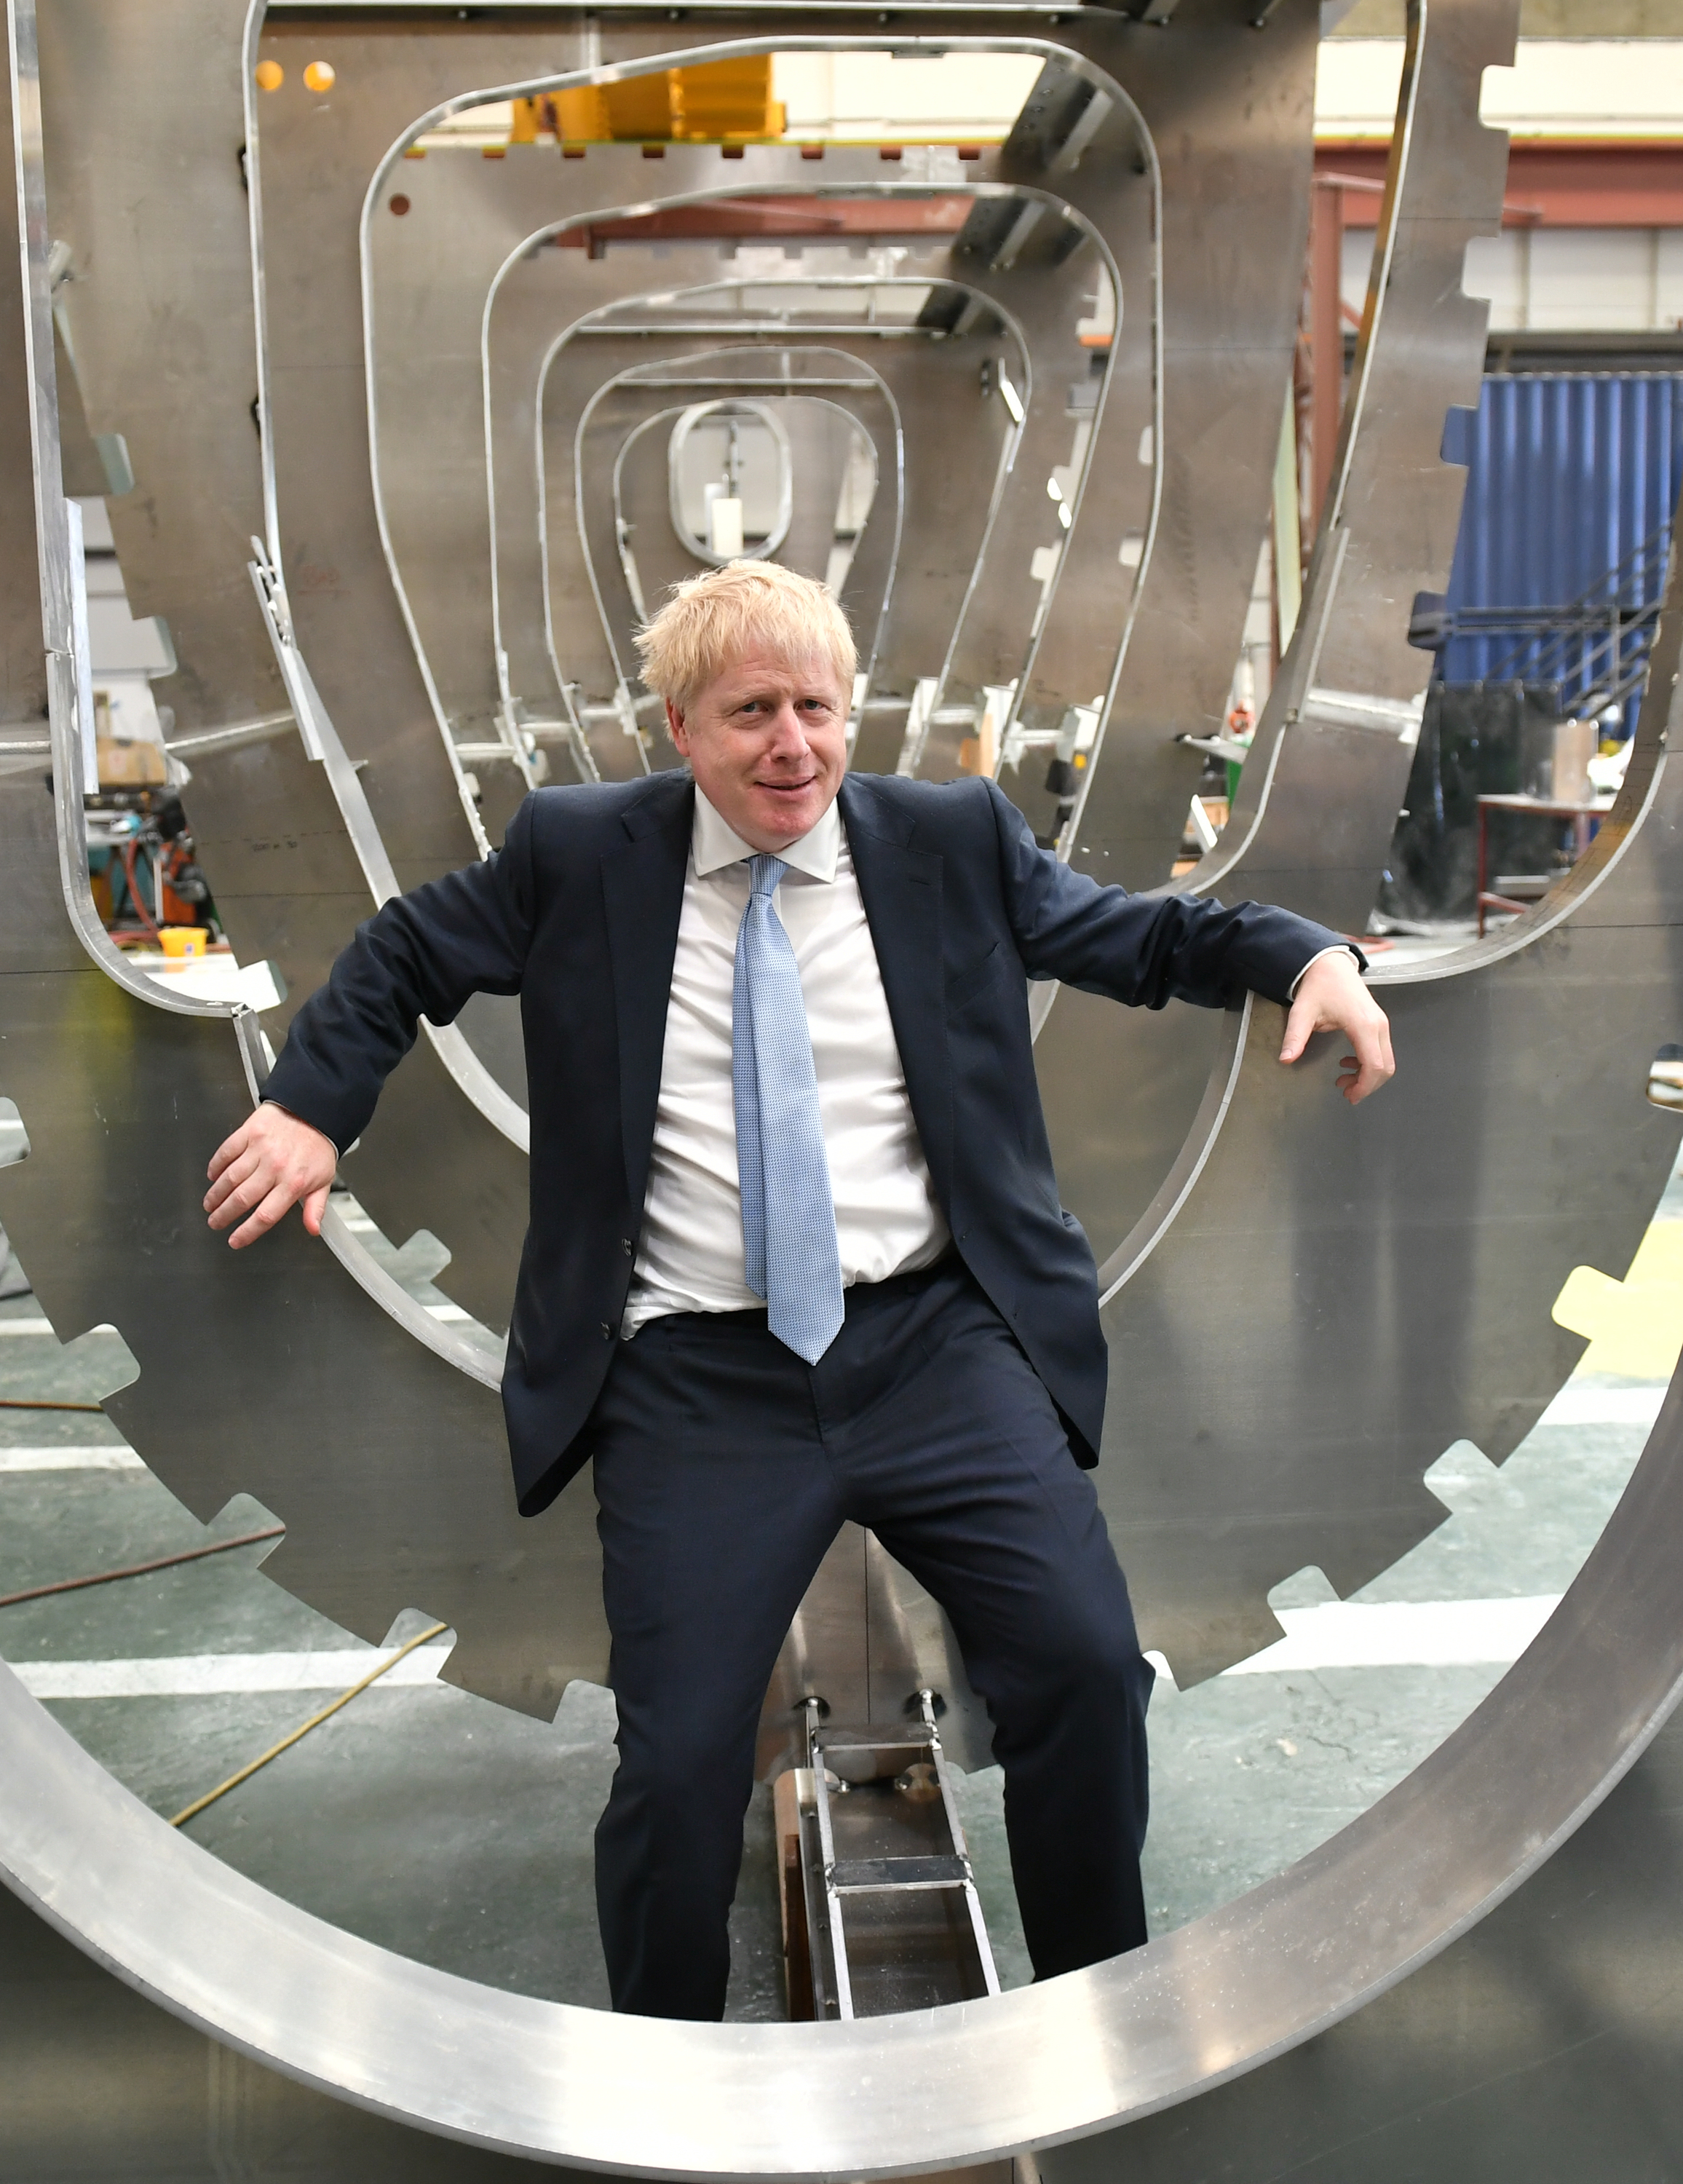 Conservative party leadership contender Boris Johnson sits in a boat under construction at the Venture Quay boatyard during a visit to the Isle of Wight.